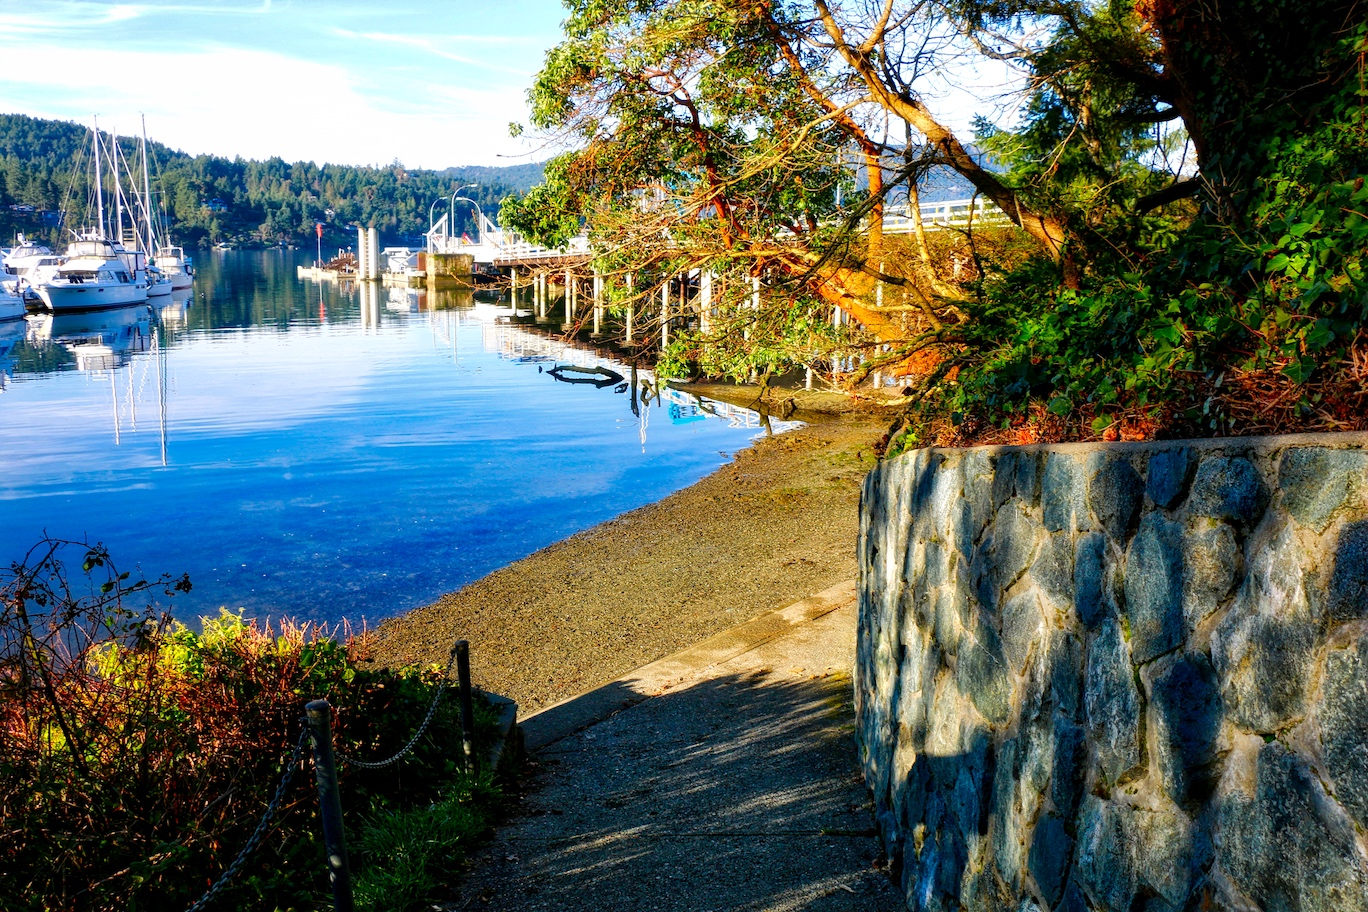 Public beach access at Brentwood Bay, BC